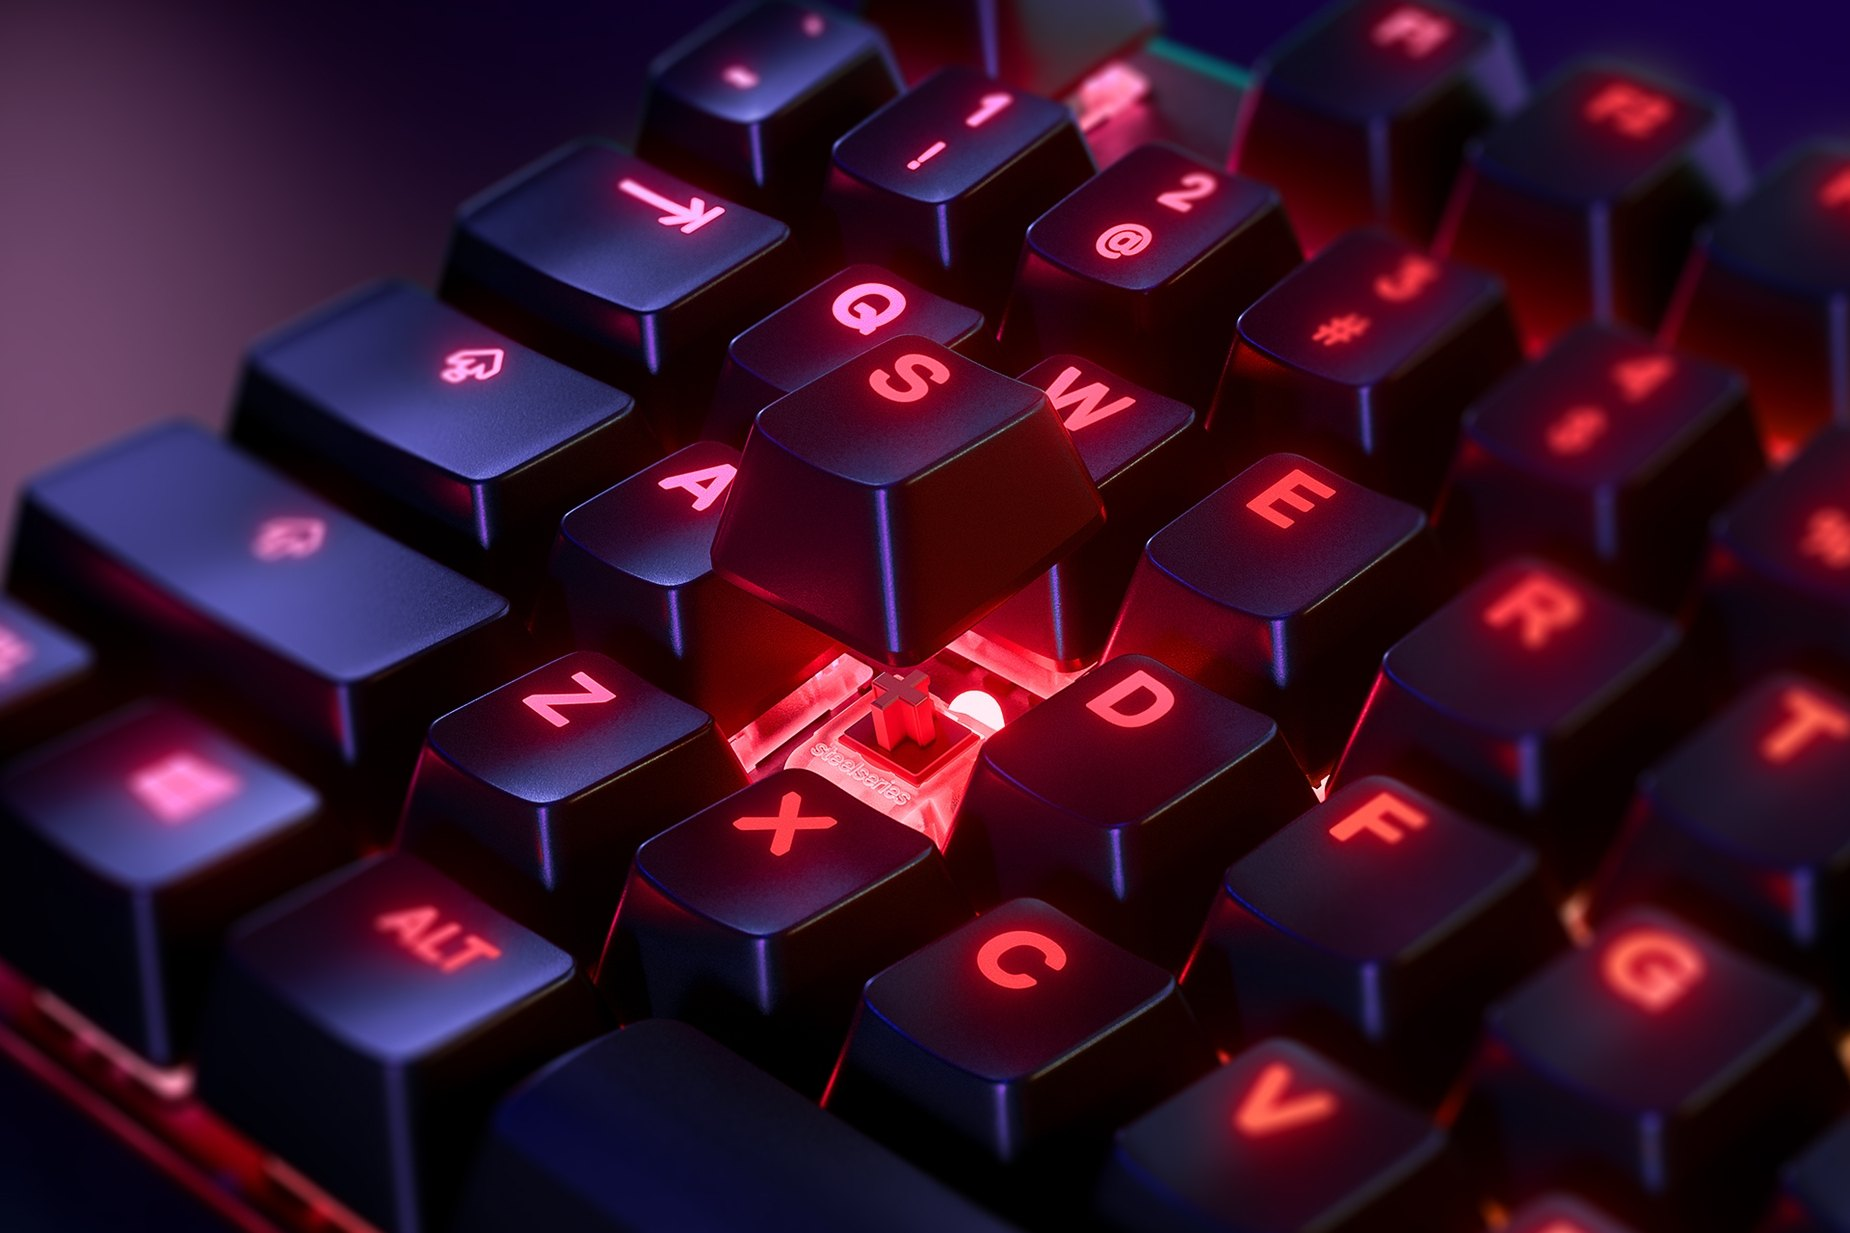 Zoomed in view of a single key on the Nordic - Apex 7 TKL (Red Switch) gaming keyboard, the key is raised up to show the SteelSeries QX2 Mechanical RGB Switch underneath